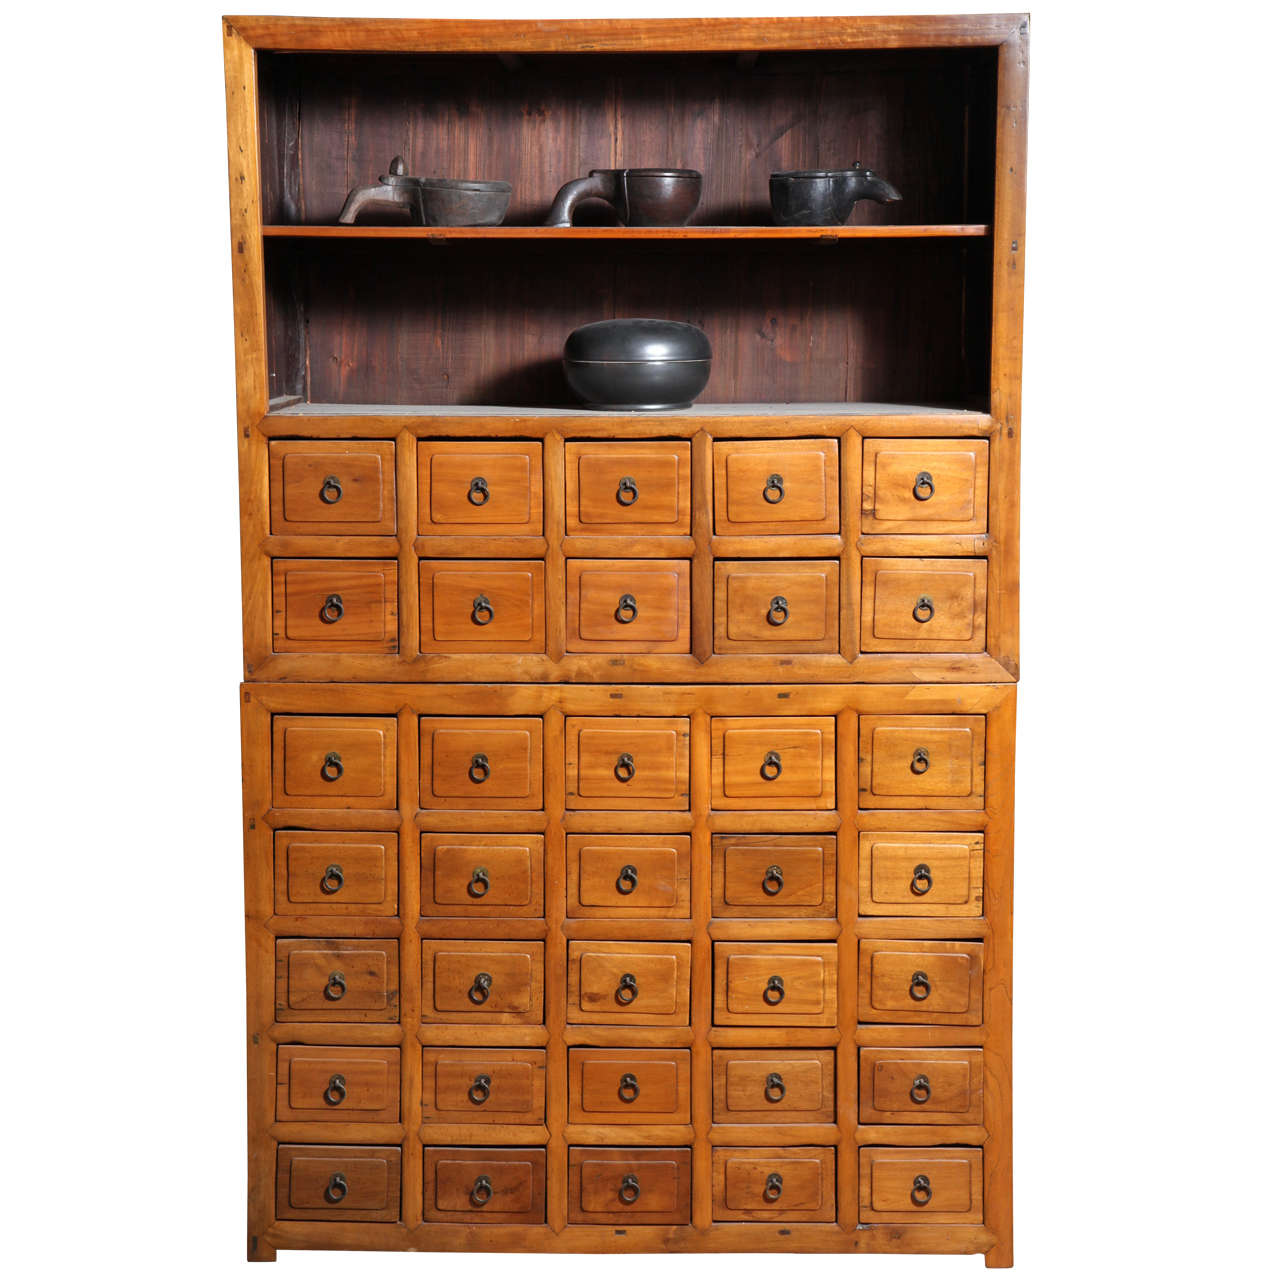 Wondrous 19Th Century Chinese Elm Apothecary Cabinet Of Elmwood With Multiple Drawers Interior Design Ideas Clesiryabchikinfo